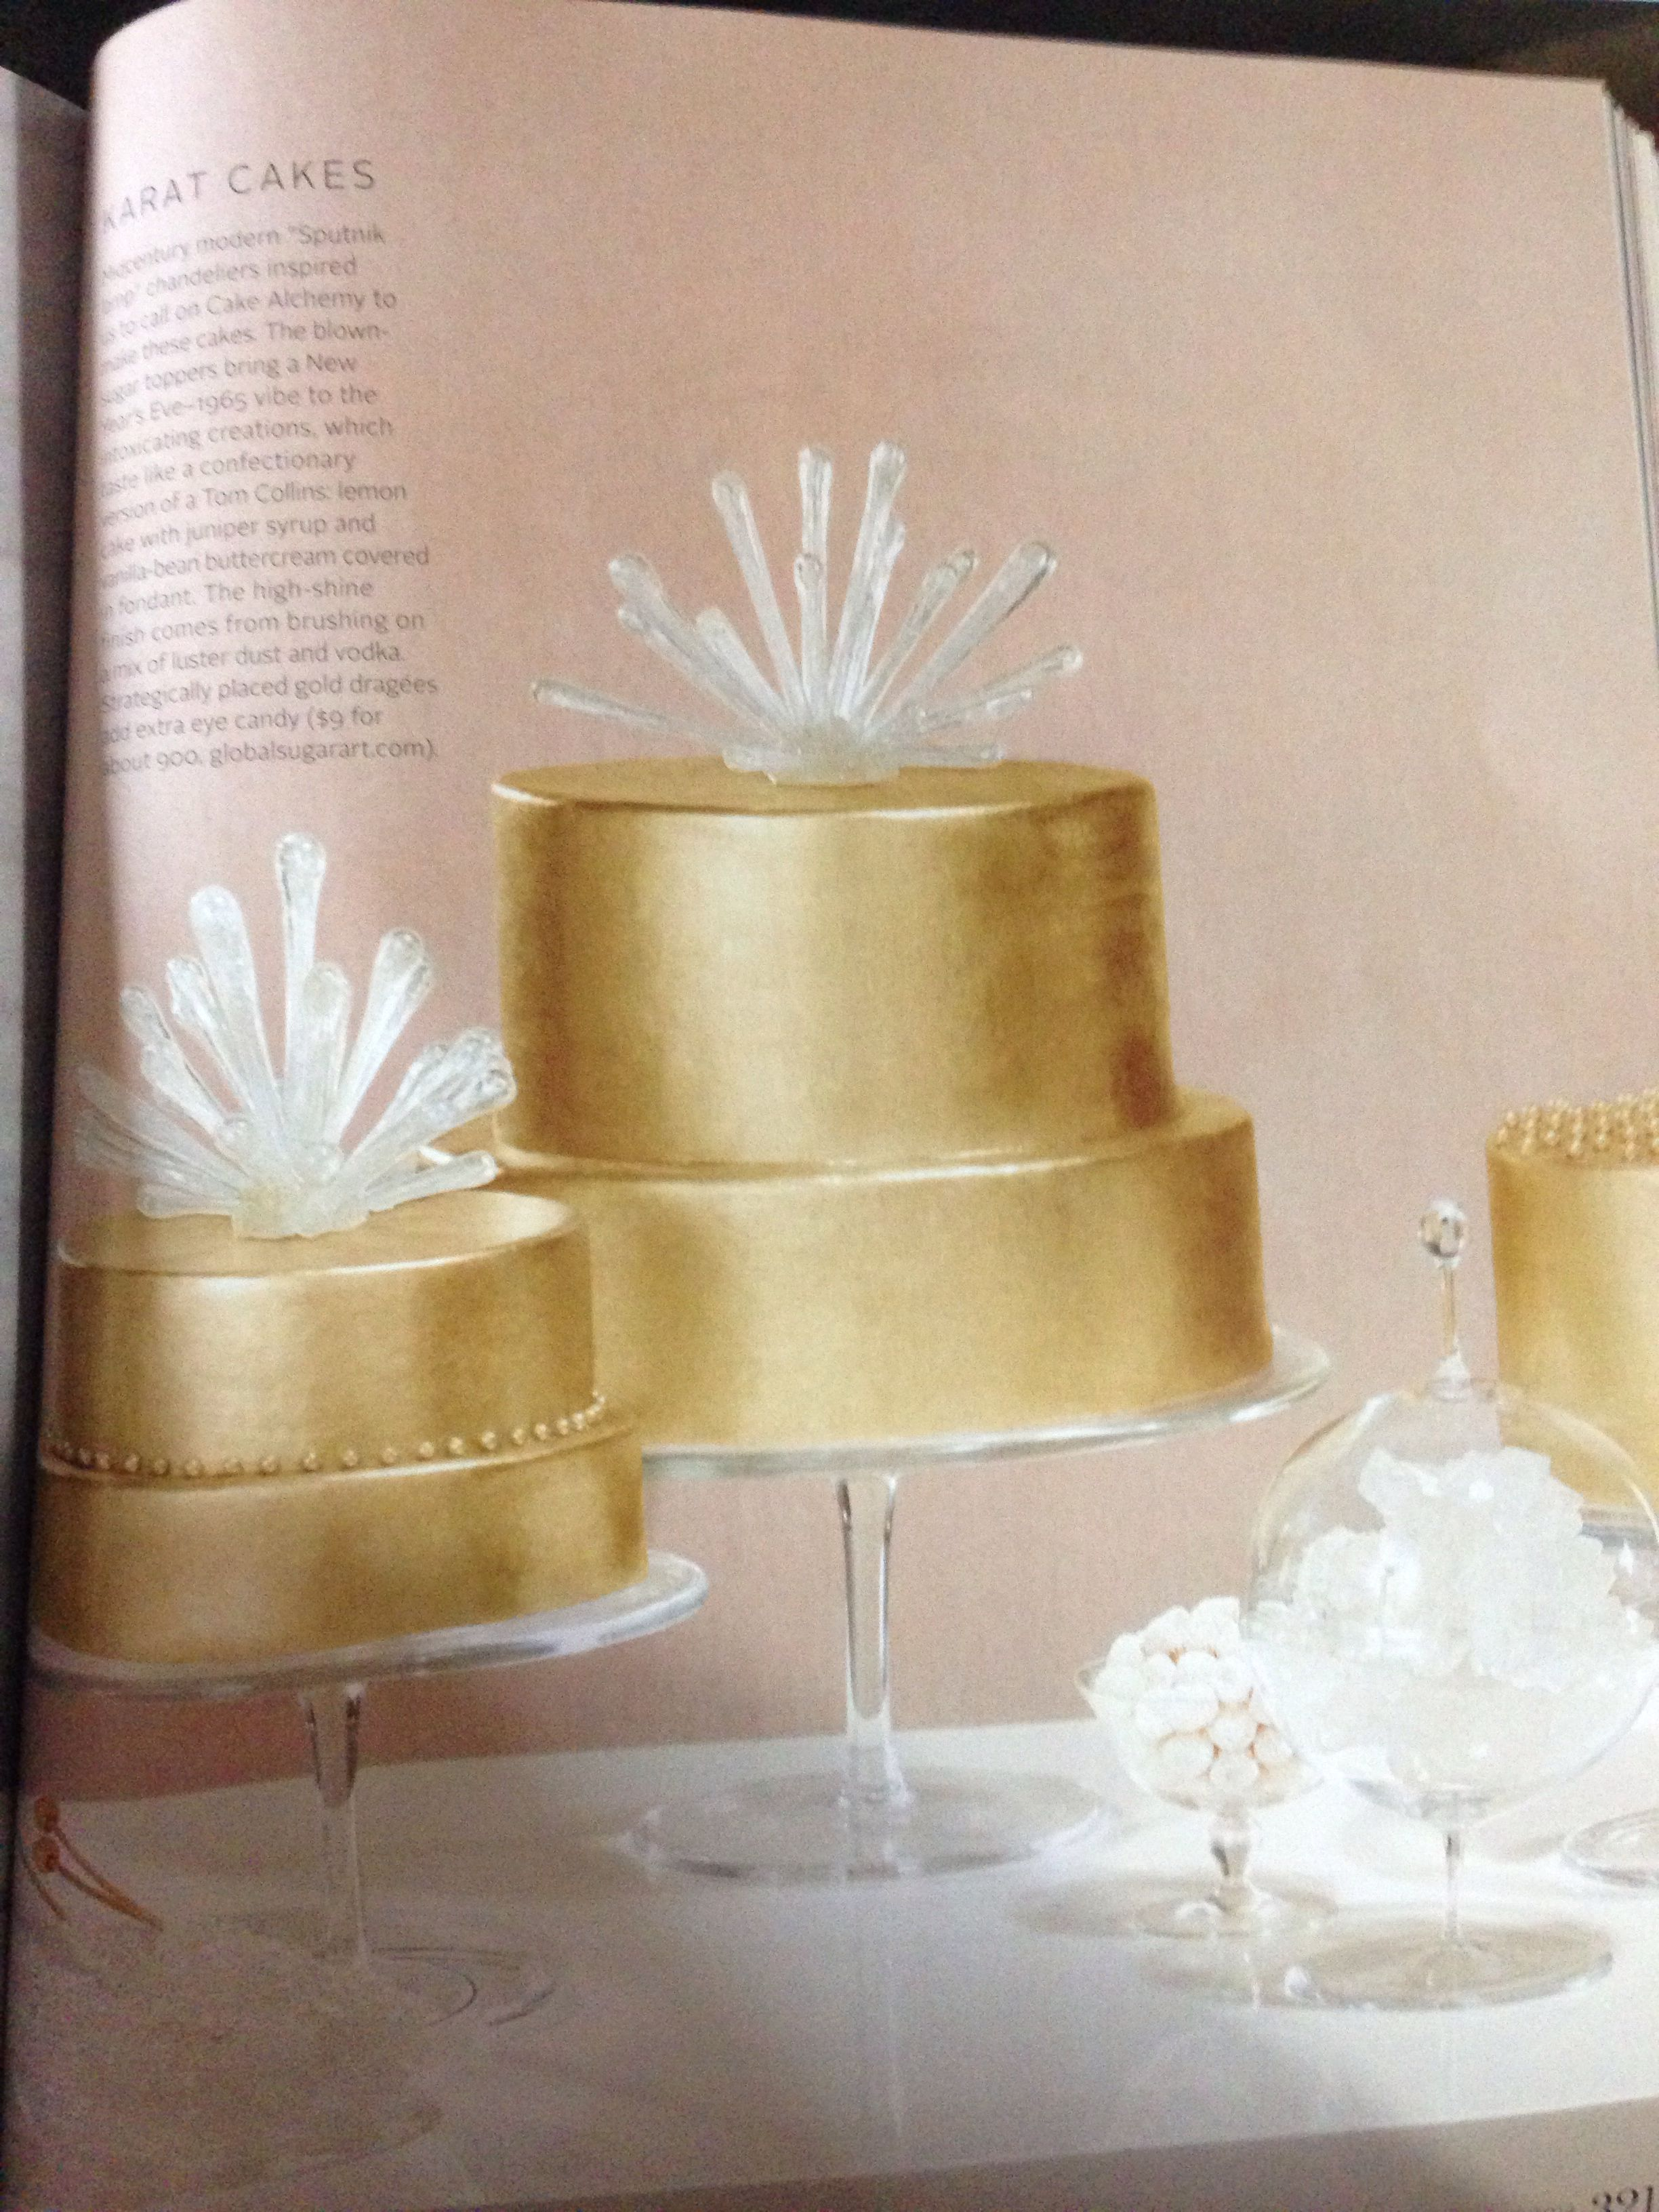 Love the blown sugar toppings, gold cake, and rock candy nearby to add to the chandelier look!